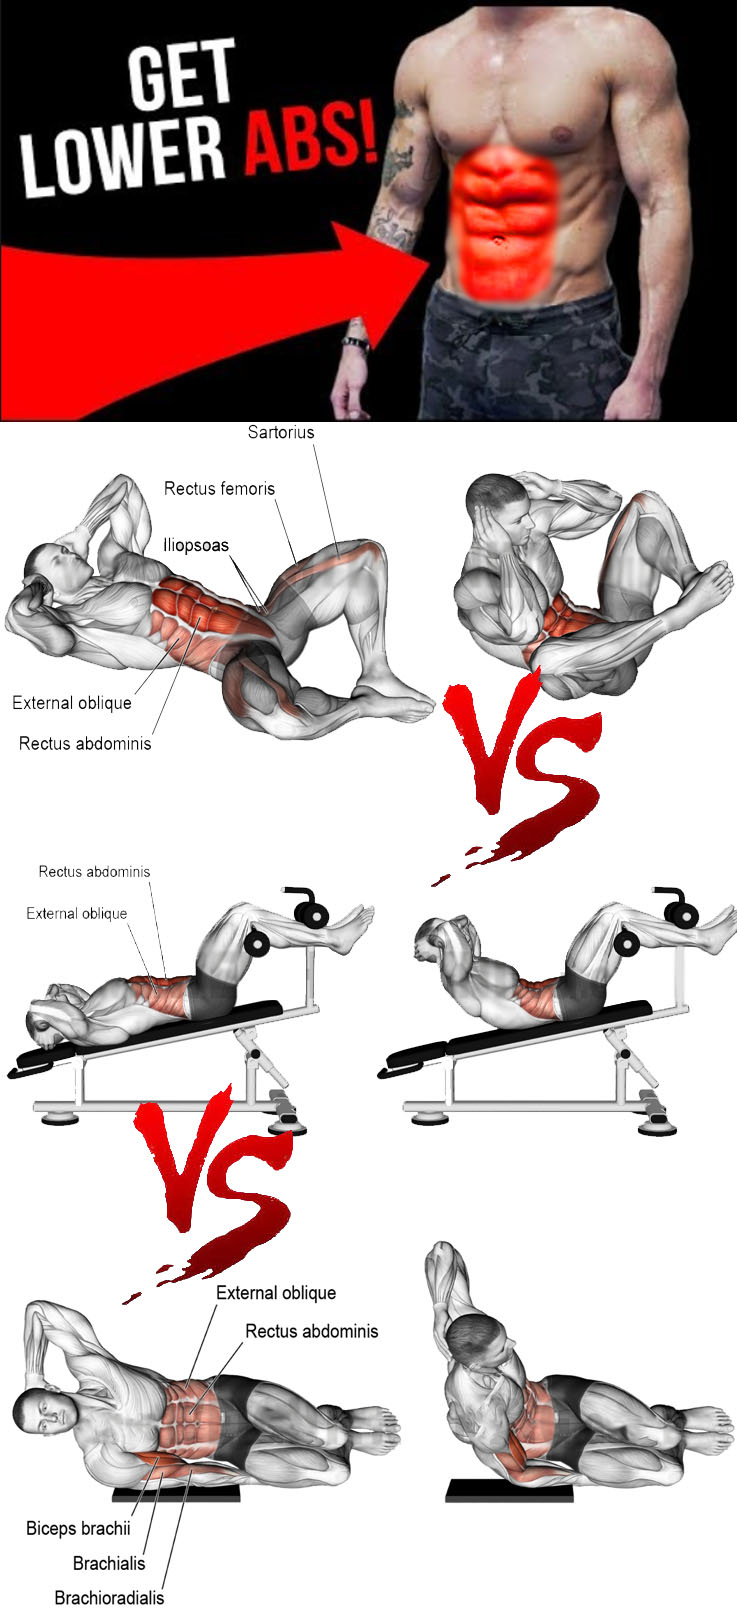 GET LOWER ABS & OBLIQUES